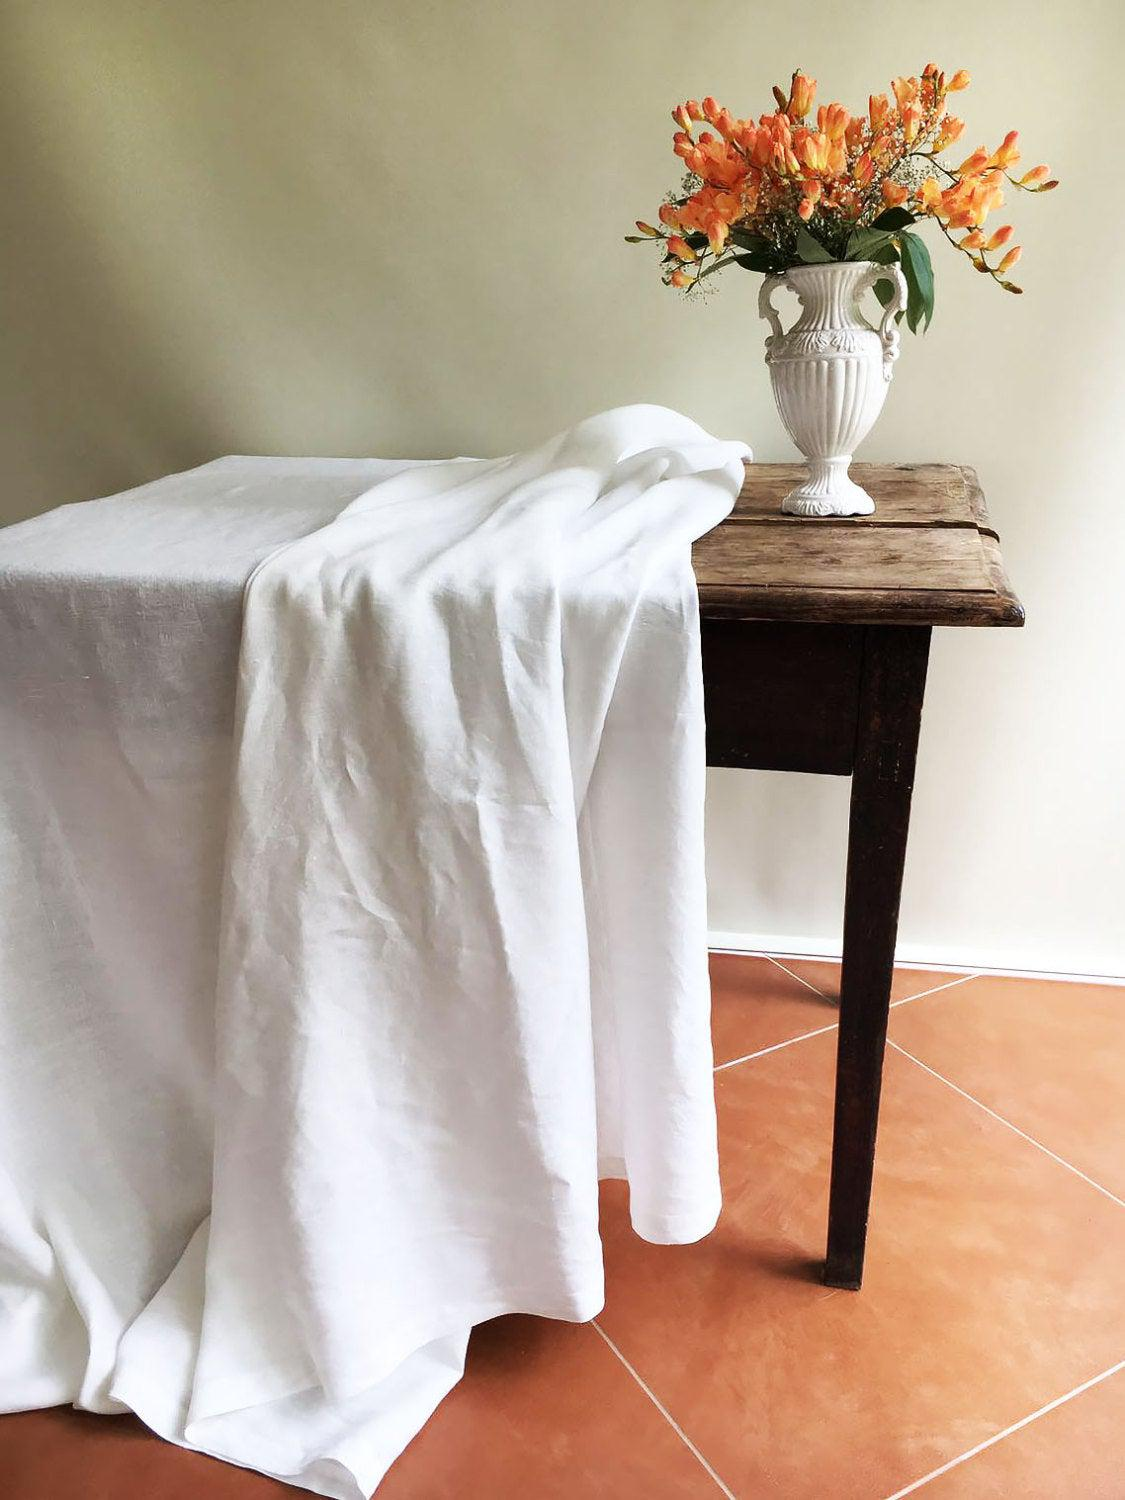 White Linen Table Cloth, Pure White Linen, Tablecloth Rectangle, Tablecloth Square Pure White Tablecloth linen Tablecloth Creamy White linen